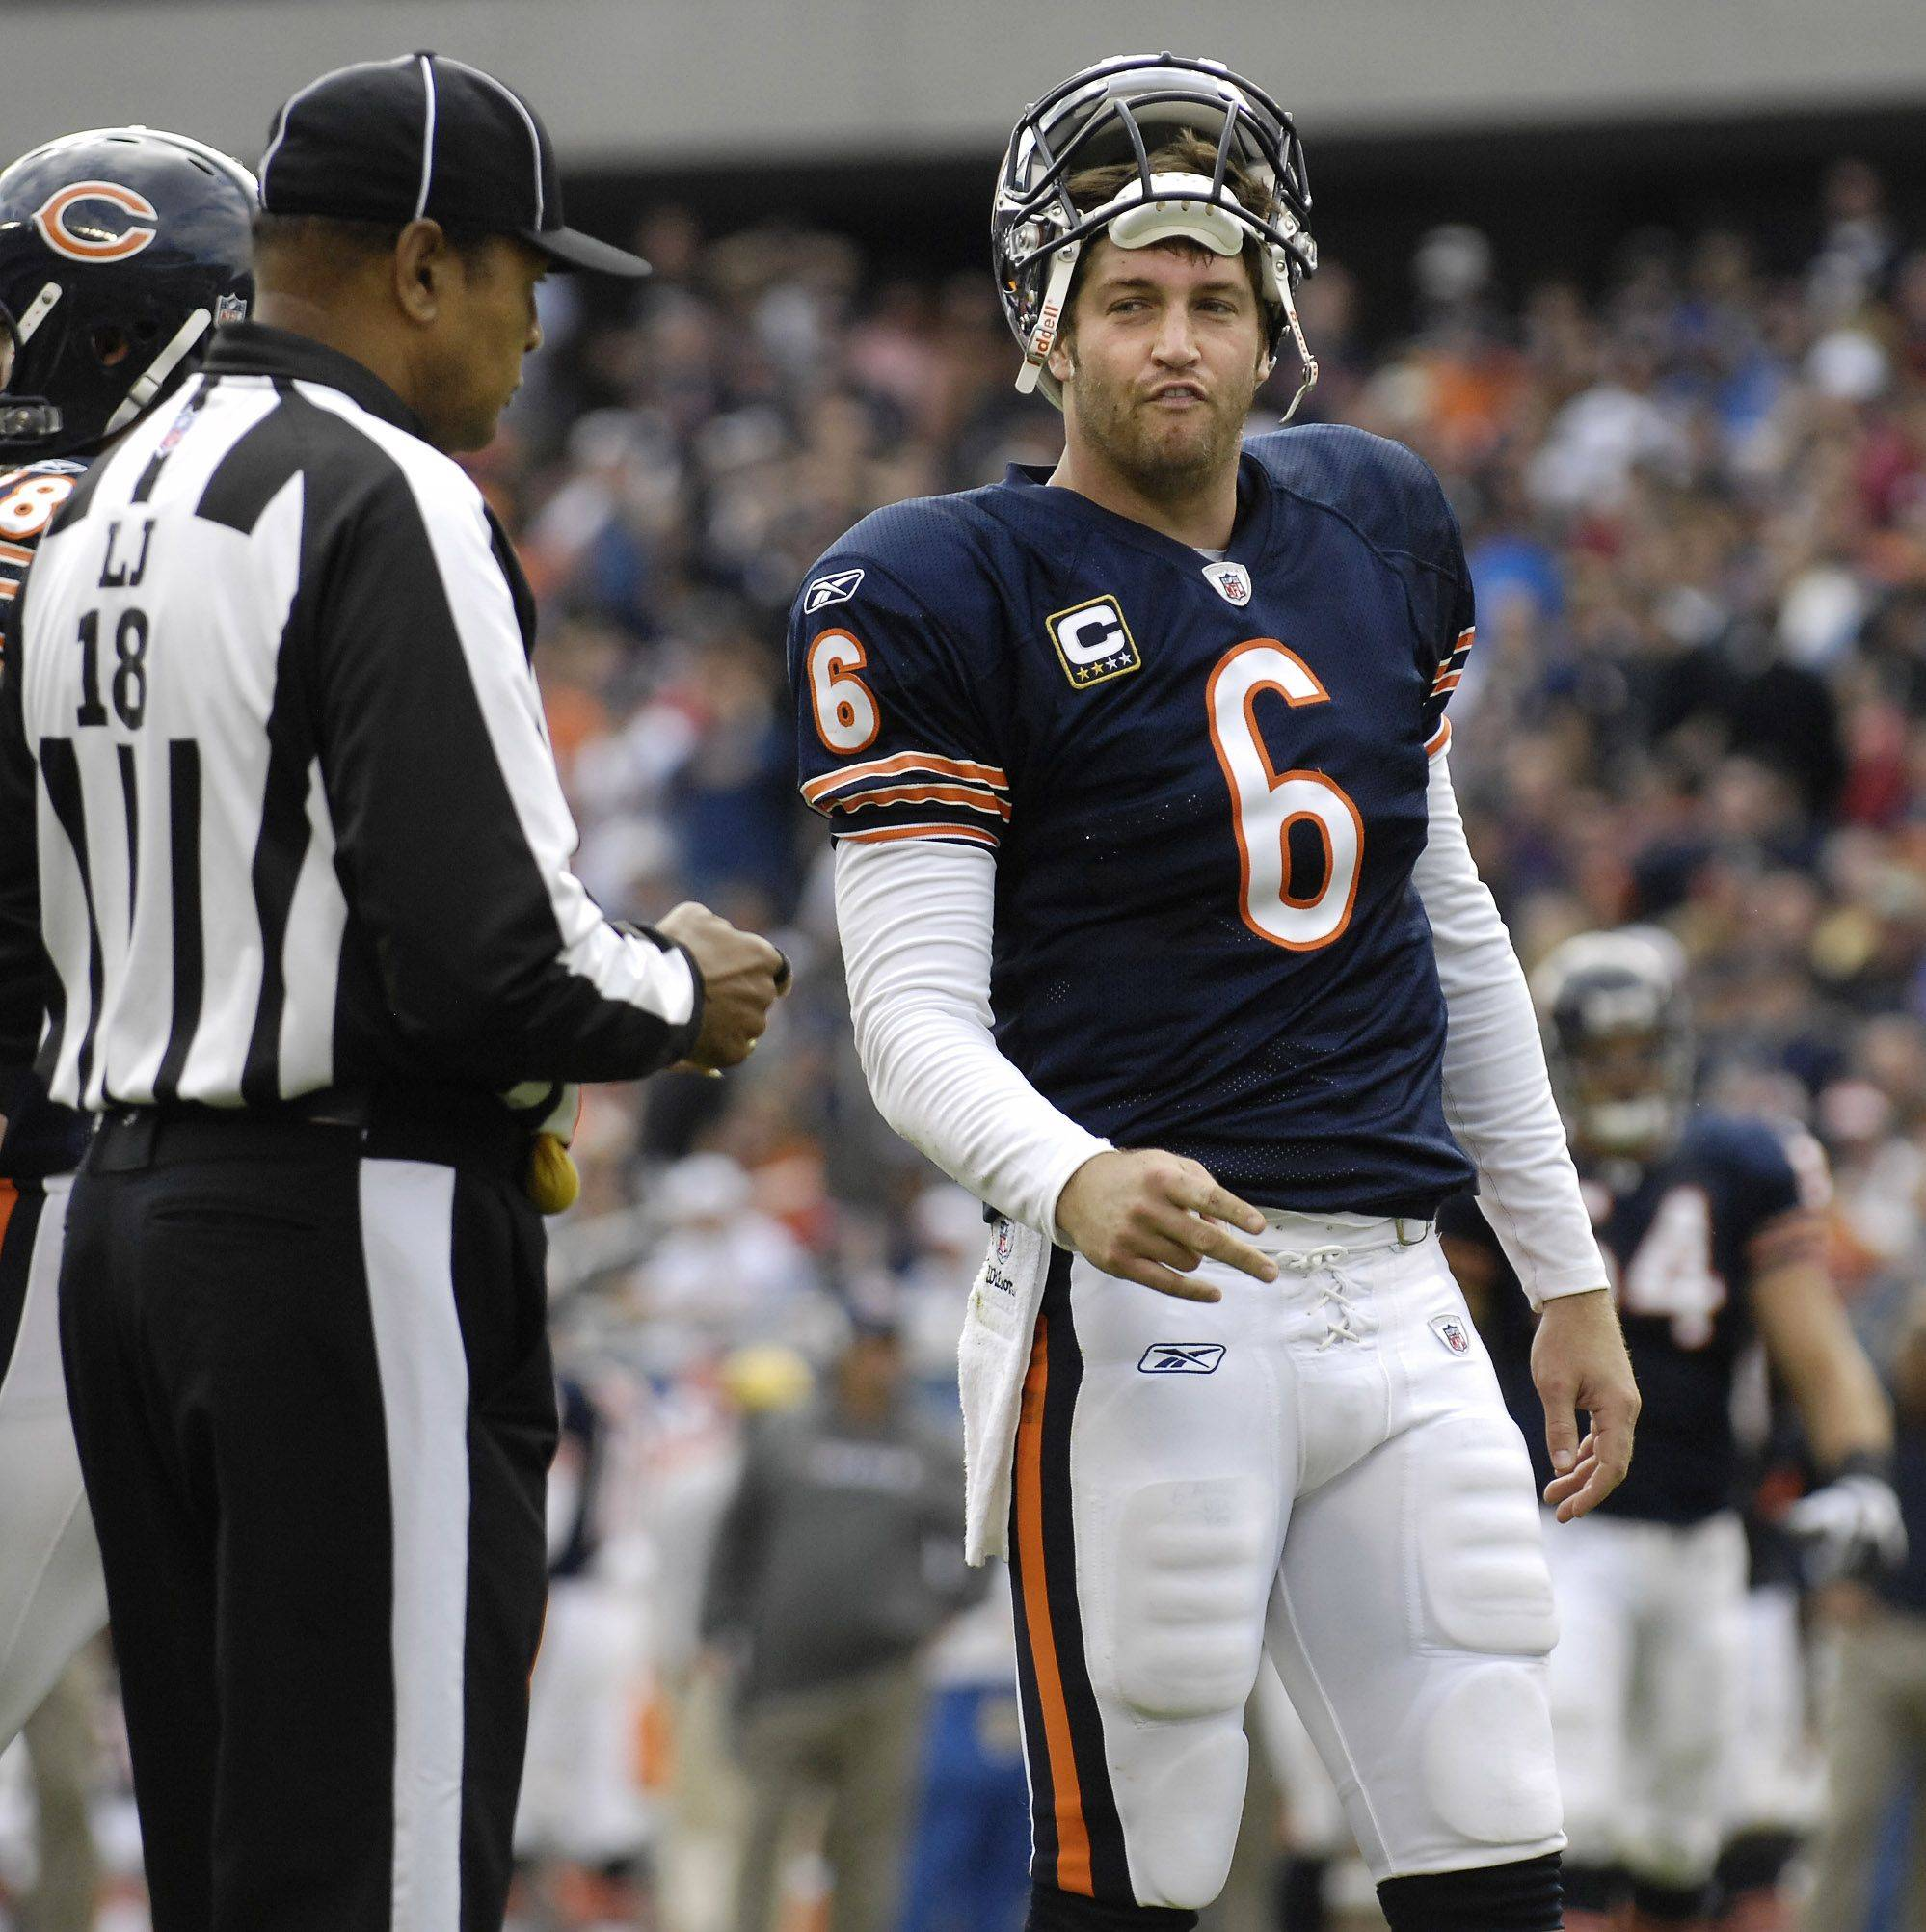 Jay Cutler has words with the line judge after it was ruled he fumbled the ball to the Washington Redskins on the goal line in the third quarter.